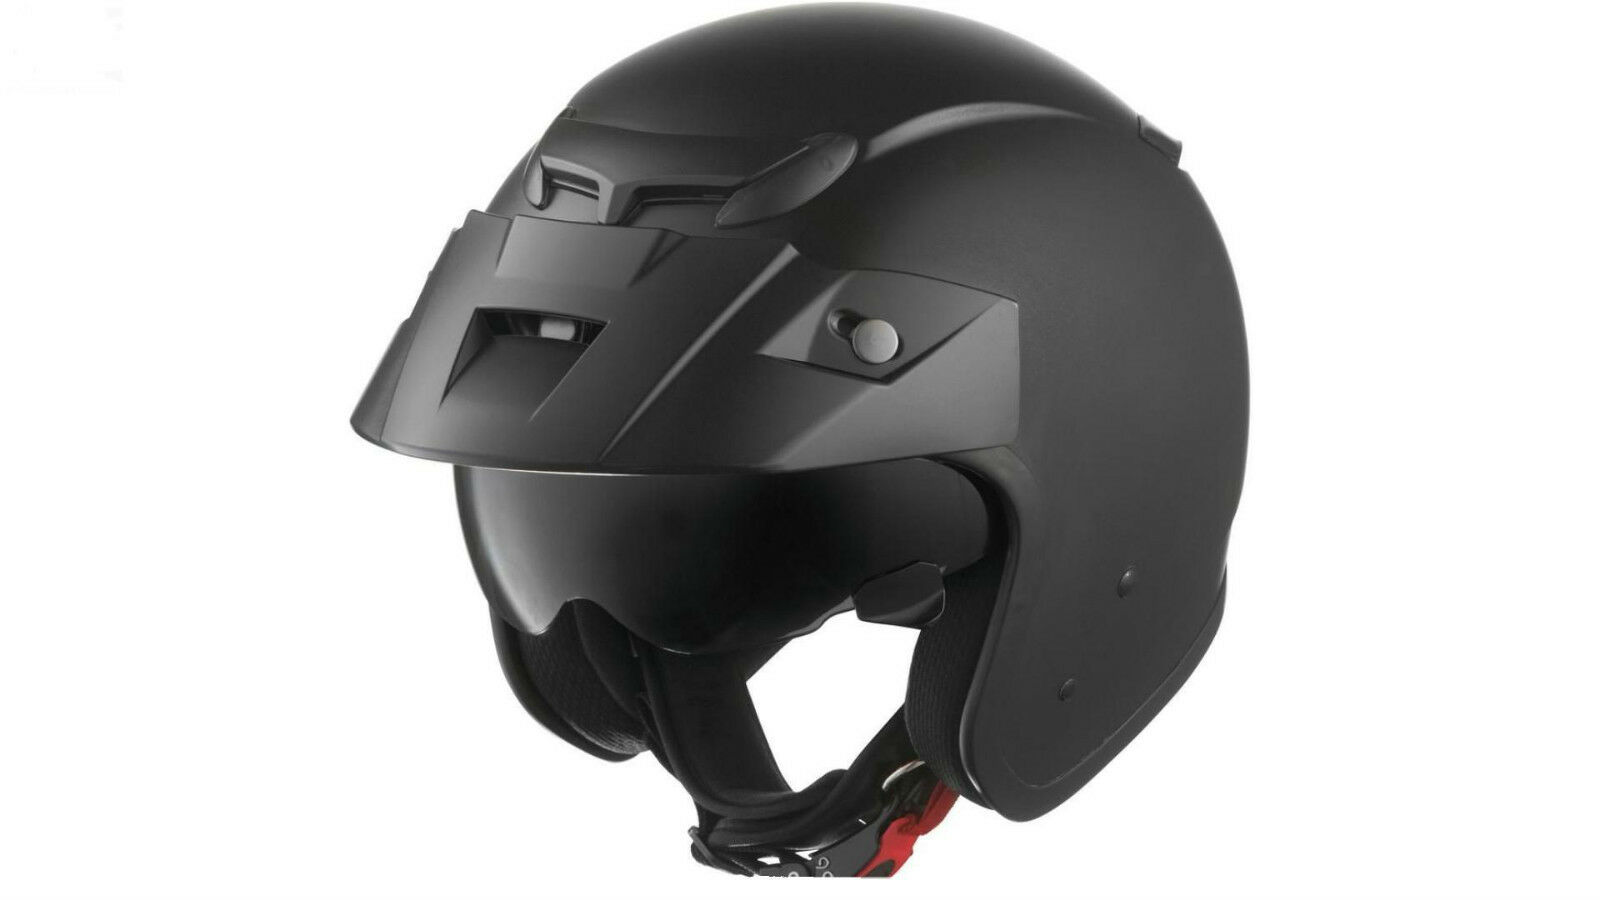 jethelm motorradhelm helm rollerhelm xl mit sonnenblende. Black Bedroom Furniture Sets. Home Design Ideas